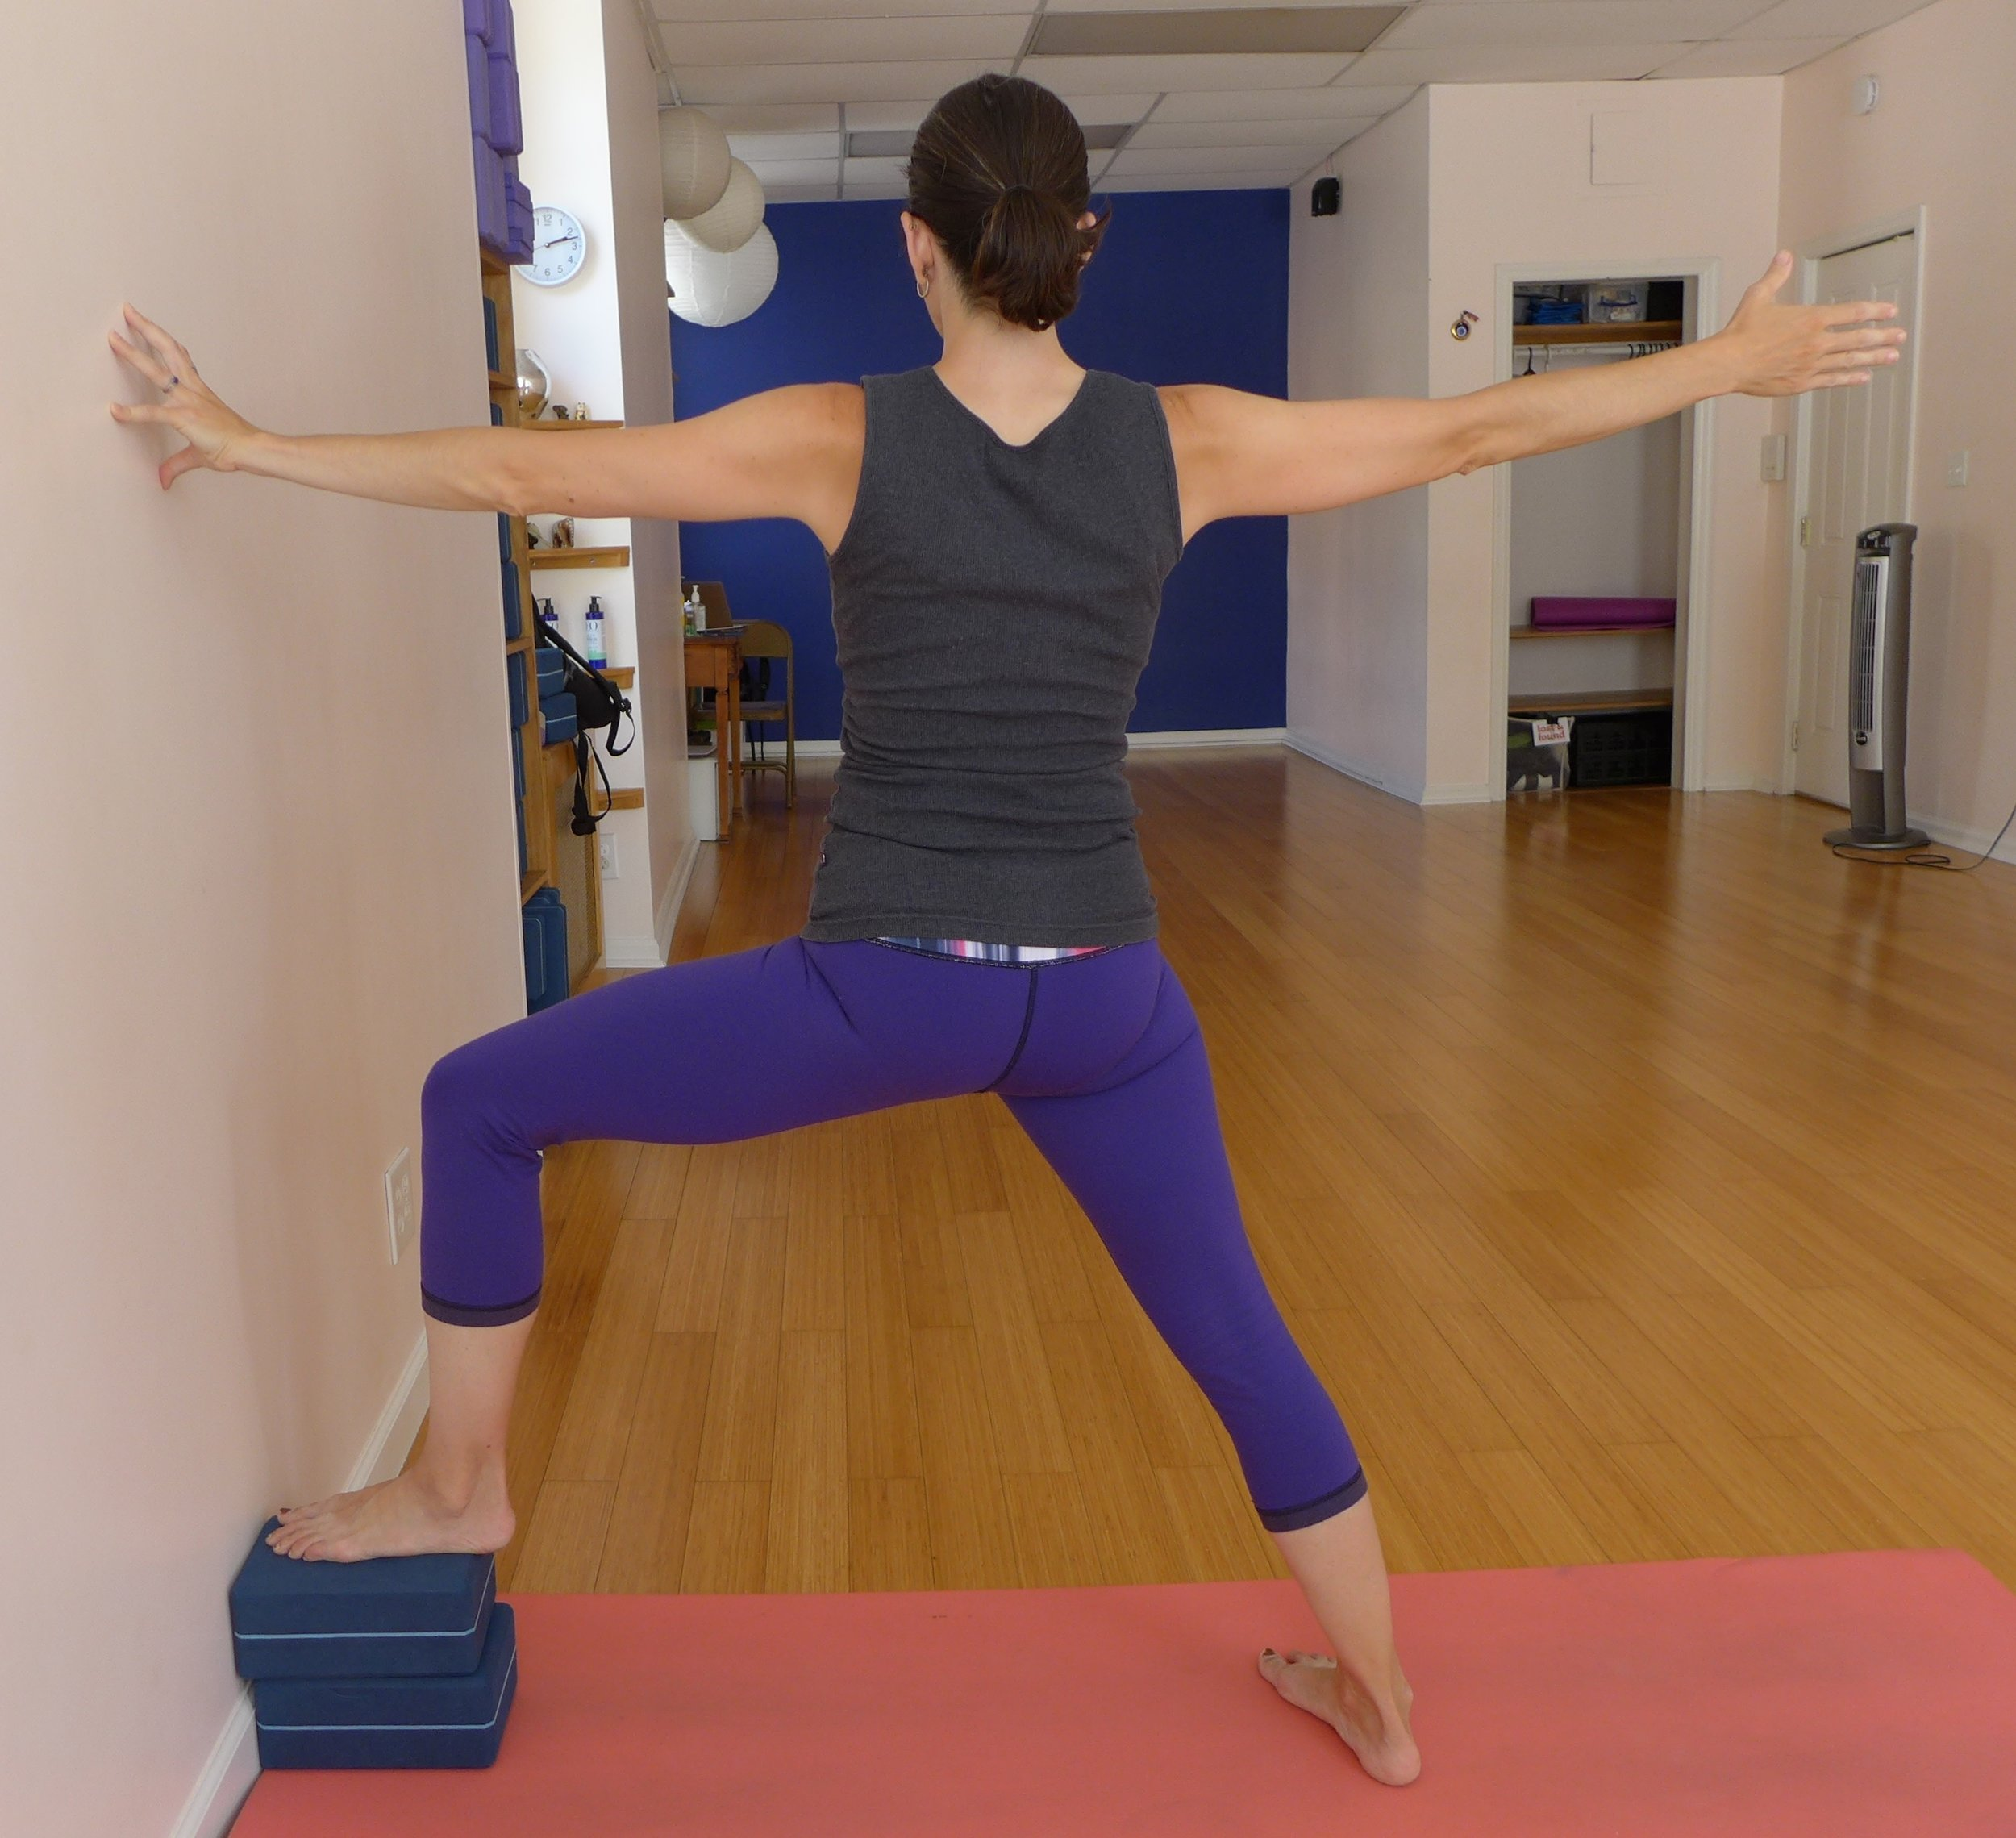 Warrior II at Wall: Warrior II can be a lot for the pelvis after childbirth. I recommend keeping this stance shorter than usual again for 6-24 weeks (or longer) after the birth. Your ligaments are still loose and you want to continue to avoid overstretching them. Here I've put two blocks under the front foot, this can help you get the opening of the inner line of the leg while keeping your stance short. Be sure to engage your outer hips here.